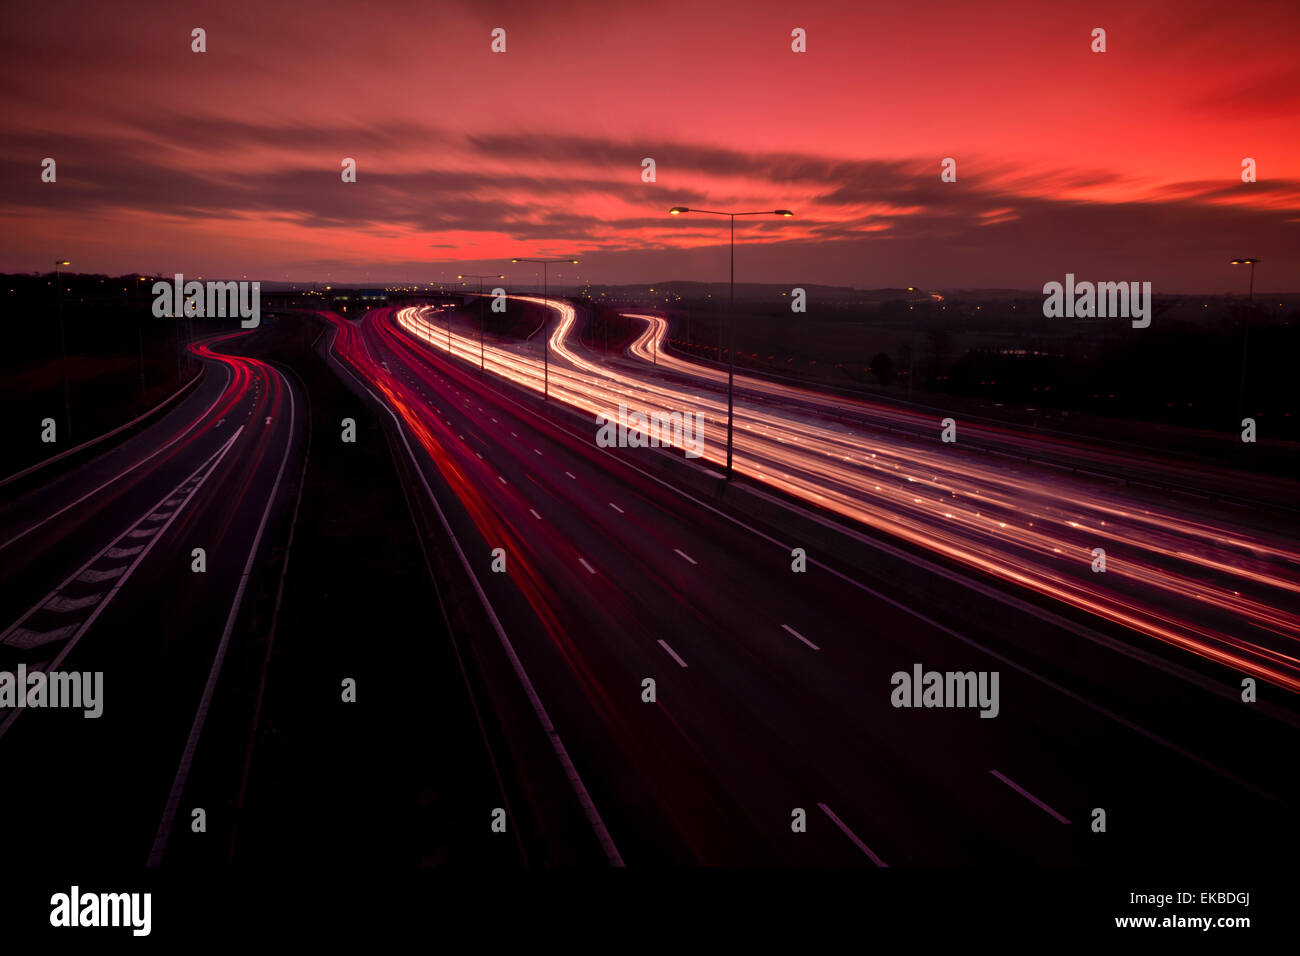 M25 motorway light trails at Dartford Crossing under dramatic sky, Kent, England, United Kingdom, Europe - Stock Image